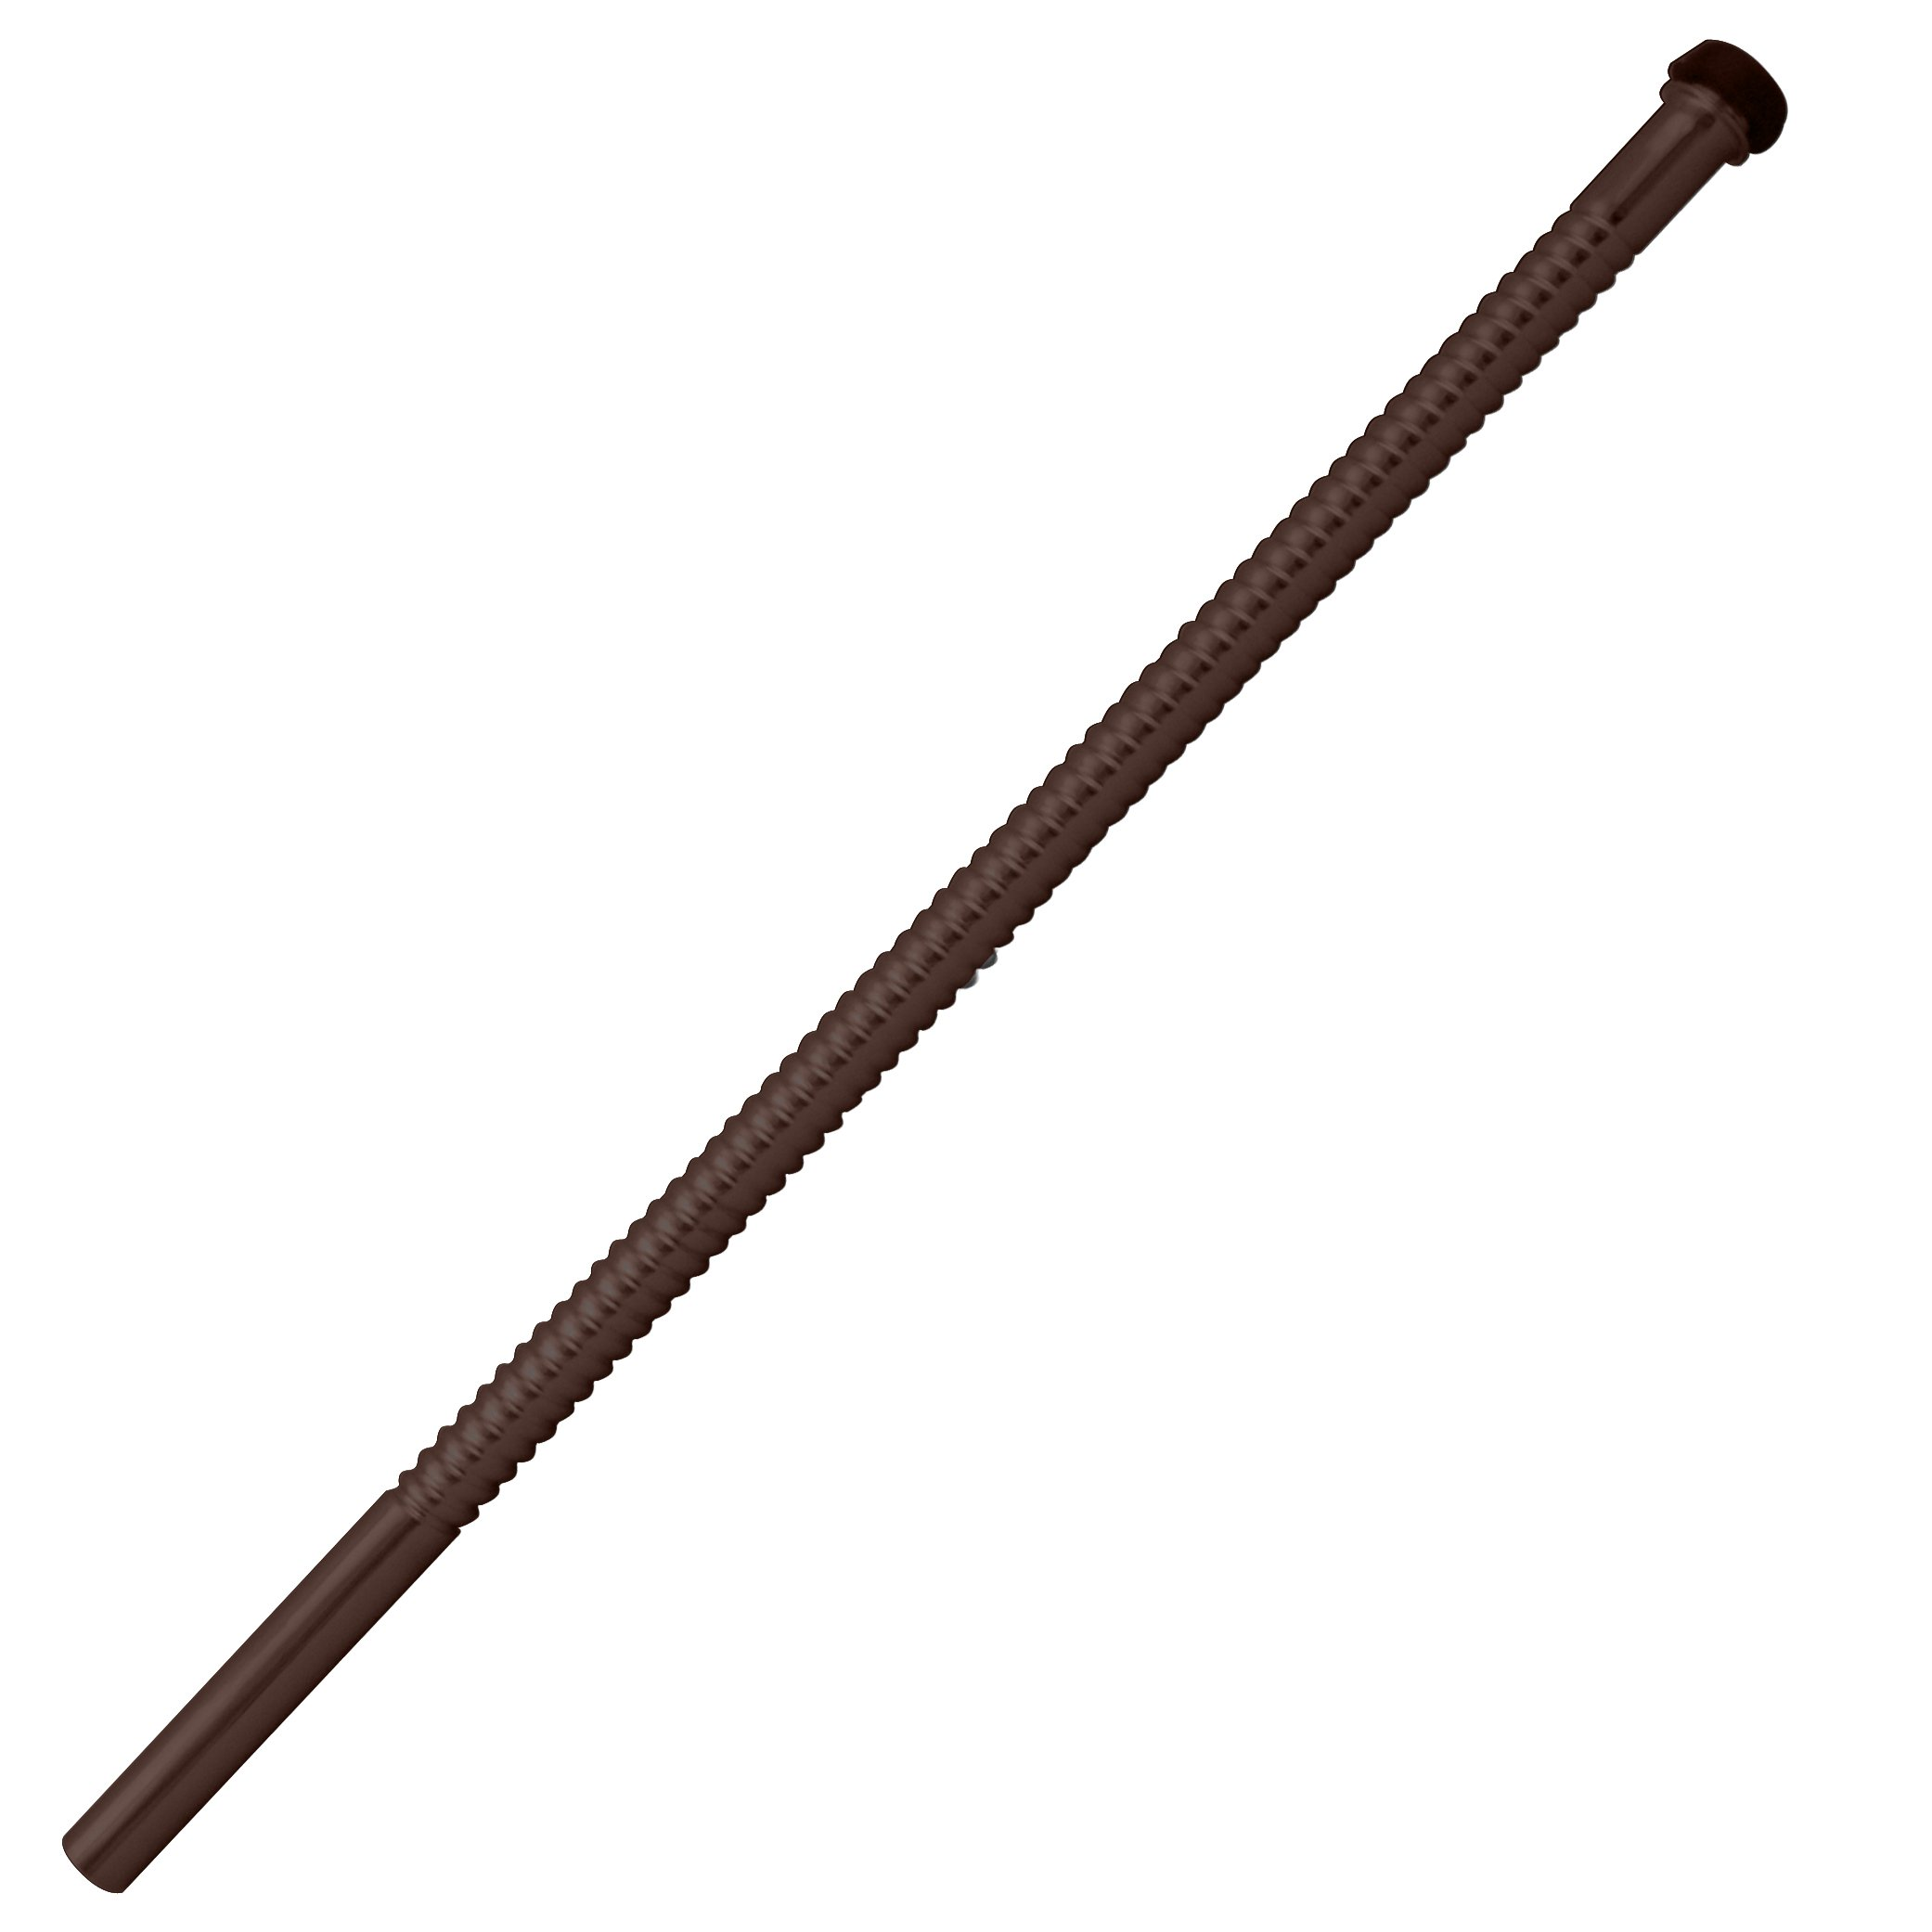 Westbrass 1/2'' x 15'' Corrugated Riser for Faucet and Toilet, Oil Rubbed Bronze, D117-12